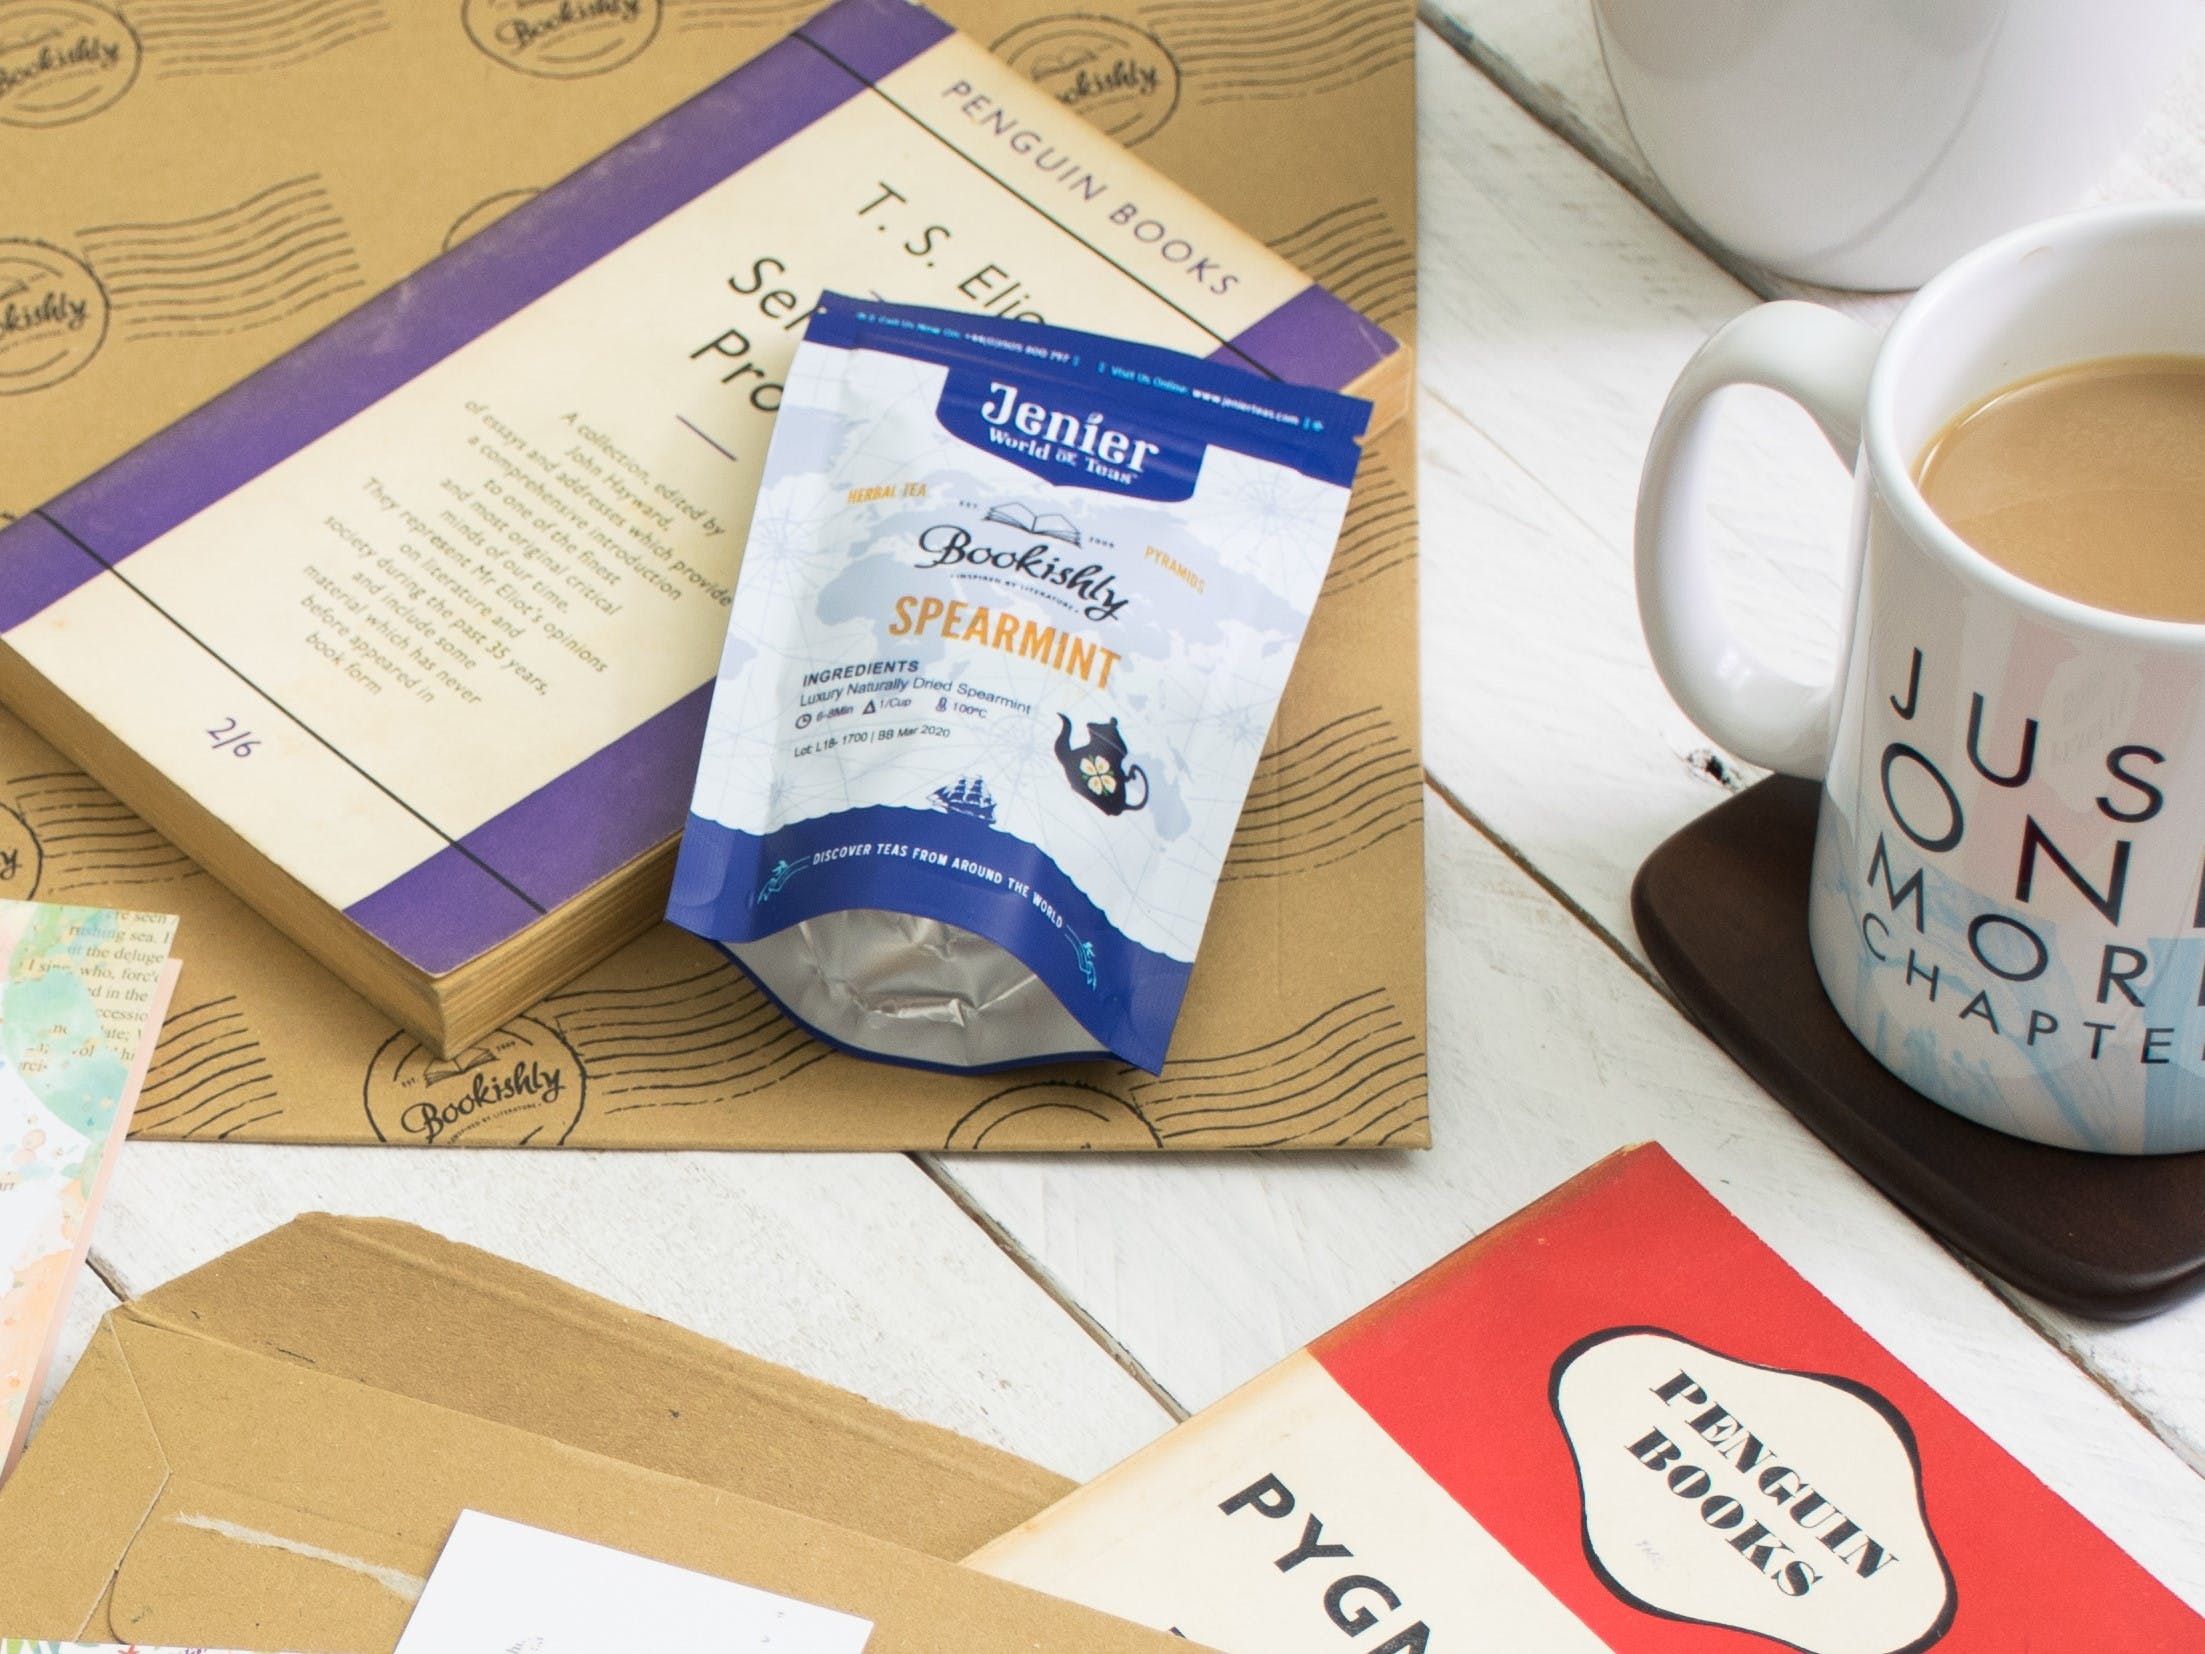 The Bookishly Tea and Vintage Book Club